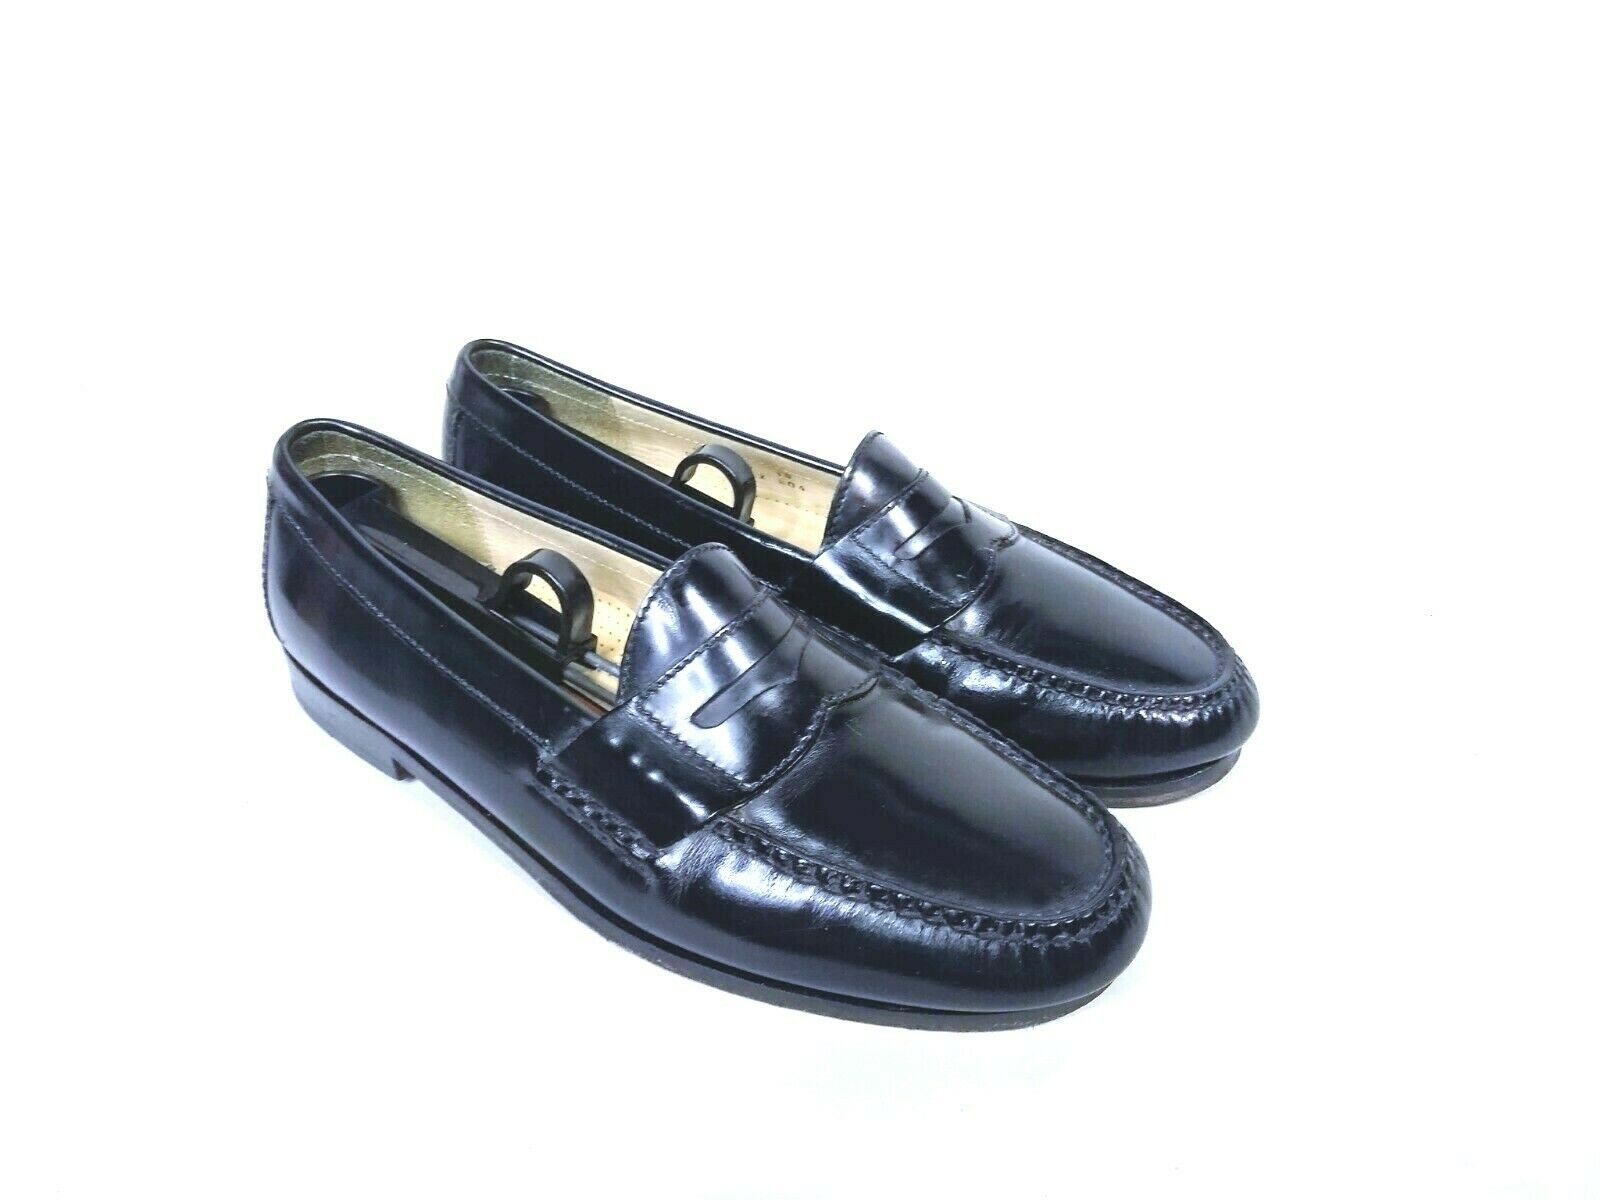 Cole Haan Mens Black Moc Toe Pinch Penny Leather Loafer Slip-on Shoes Size 9.5 image 3